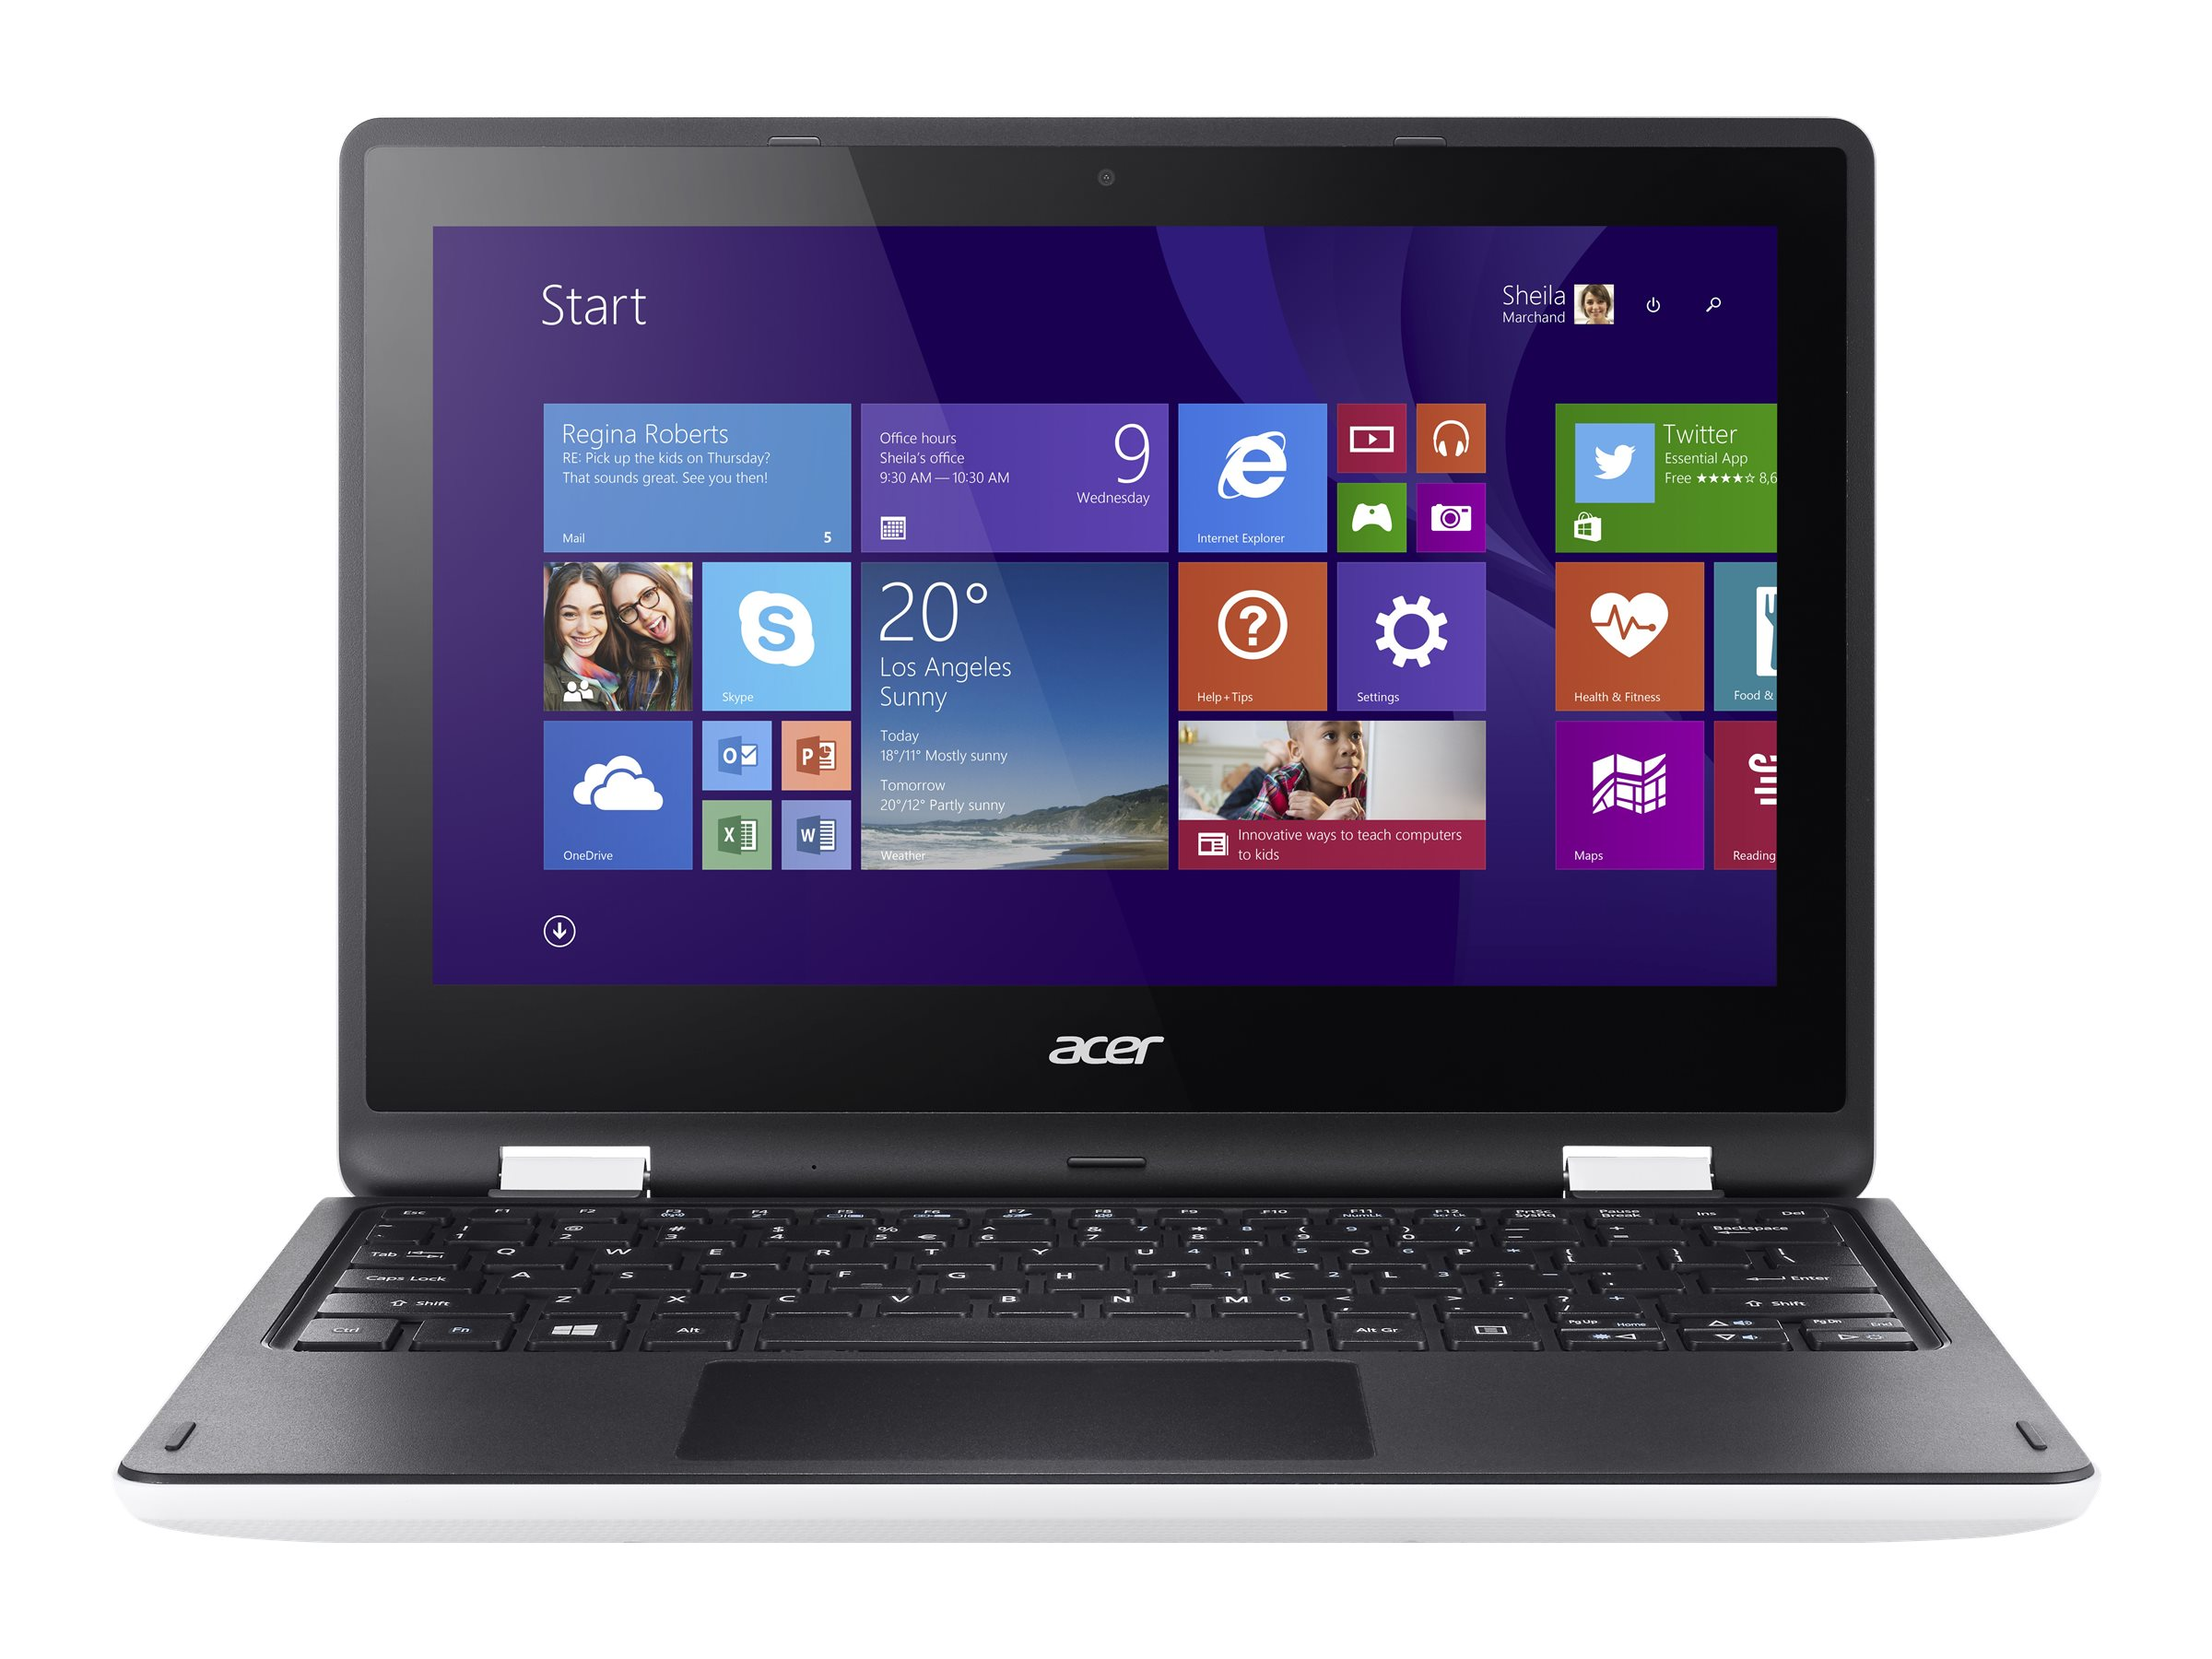 Acer NX.G83AA.005 Image 2